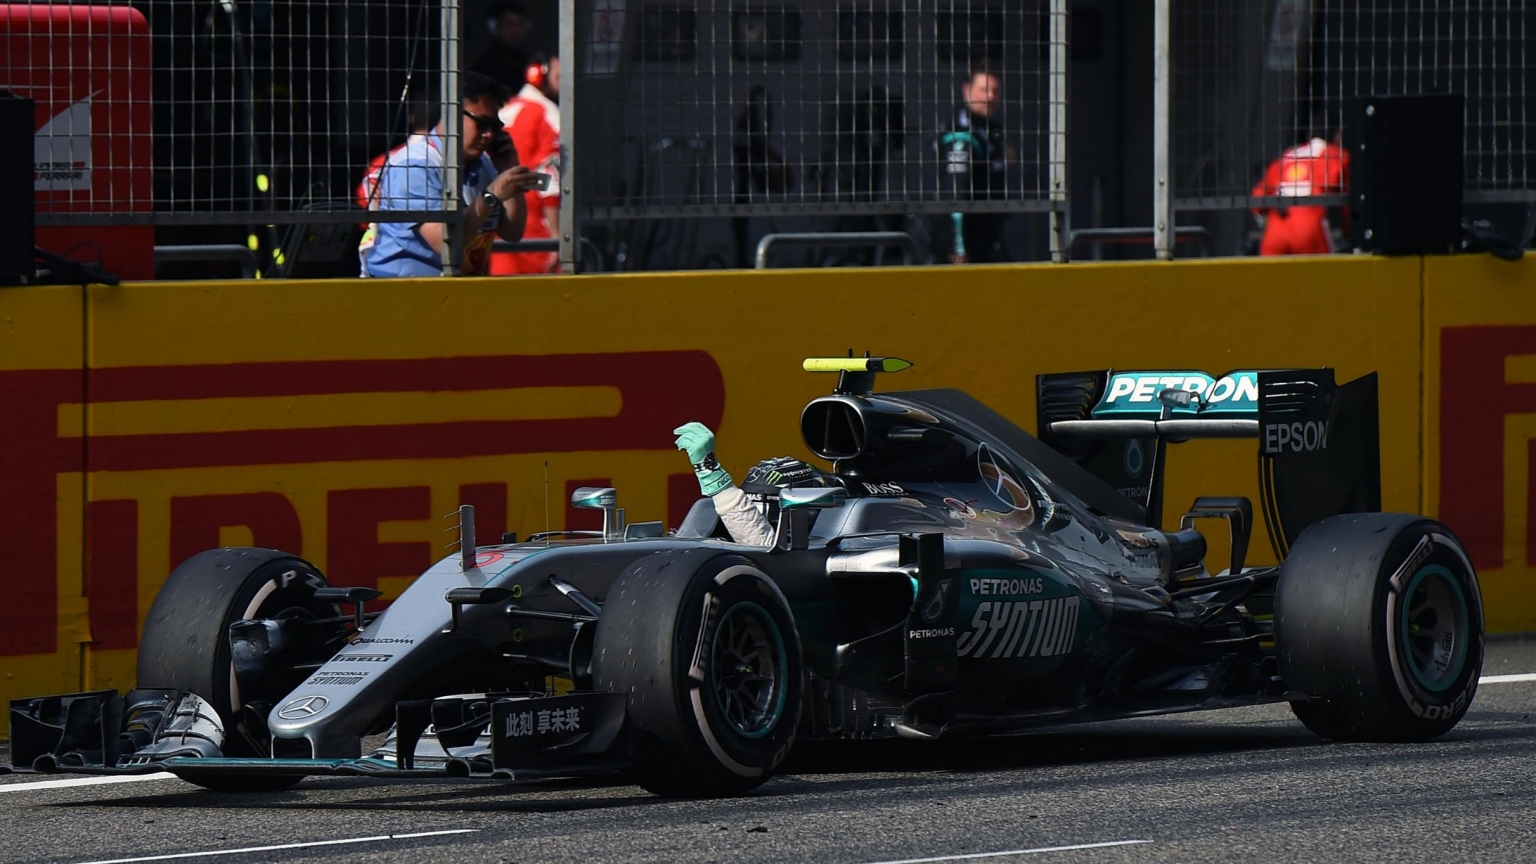 essay on formula one race Enter the world of formula 1 your go-to source for the latest f1 news, video highlights, gp results, live timing, in-depth analysis and expert commentary.